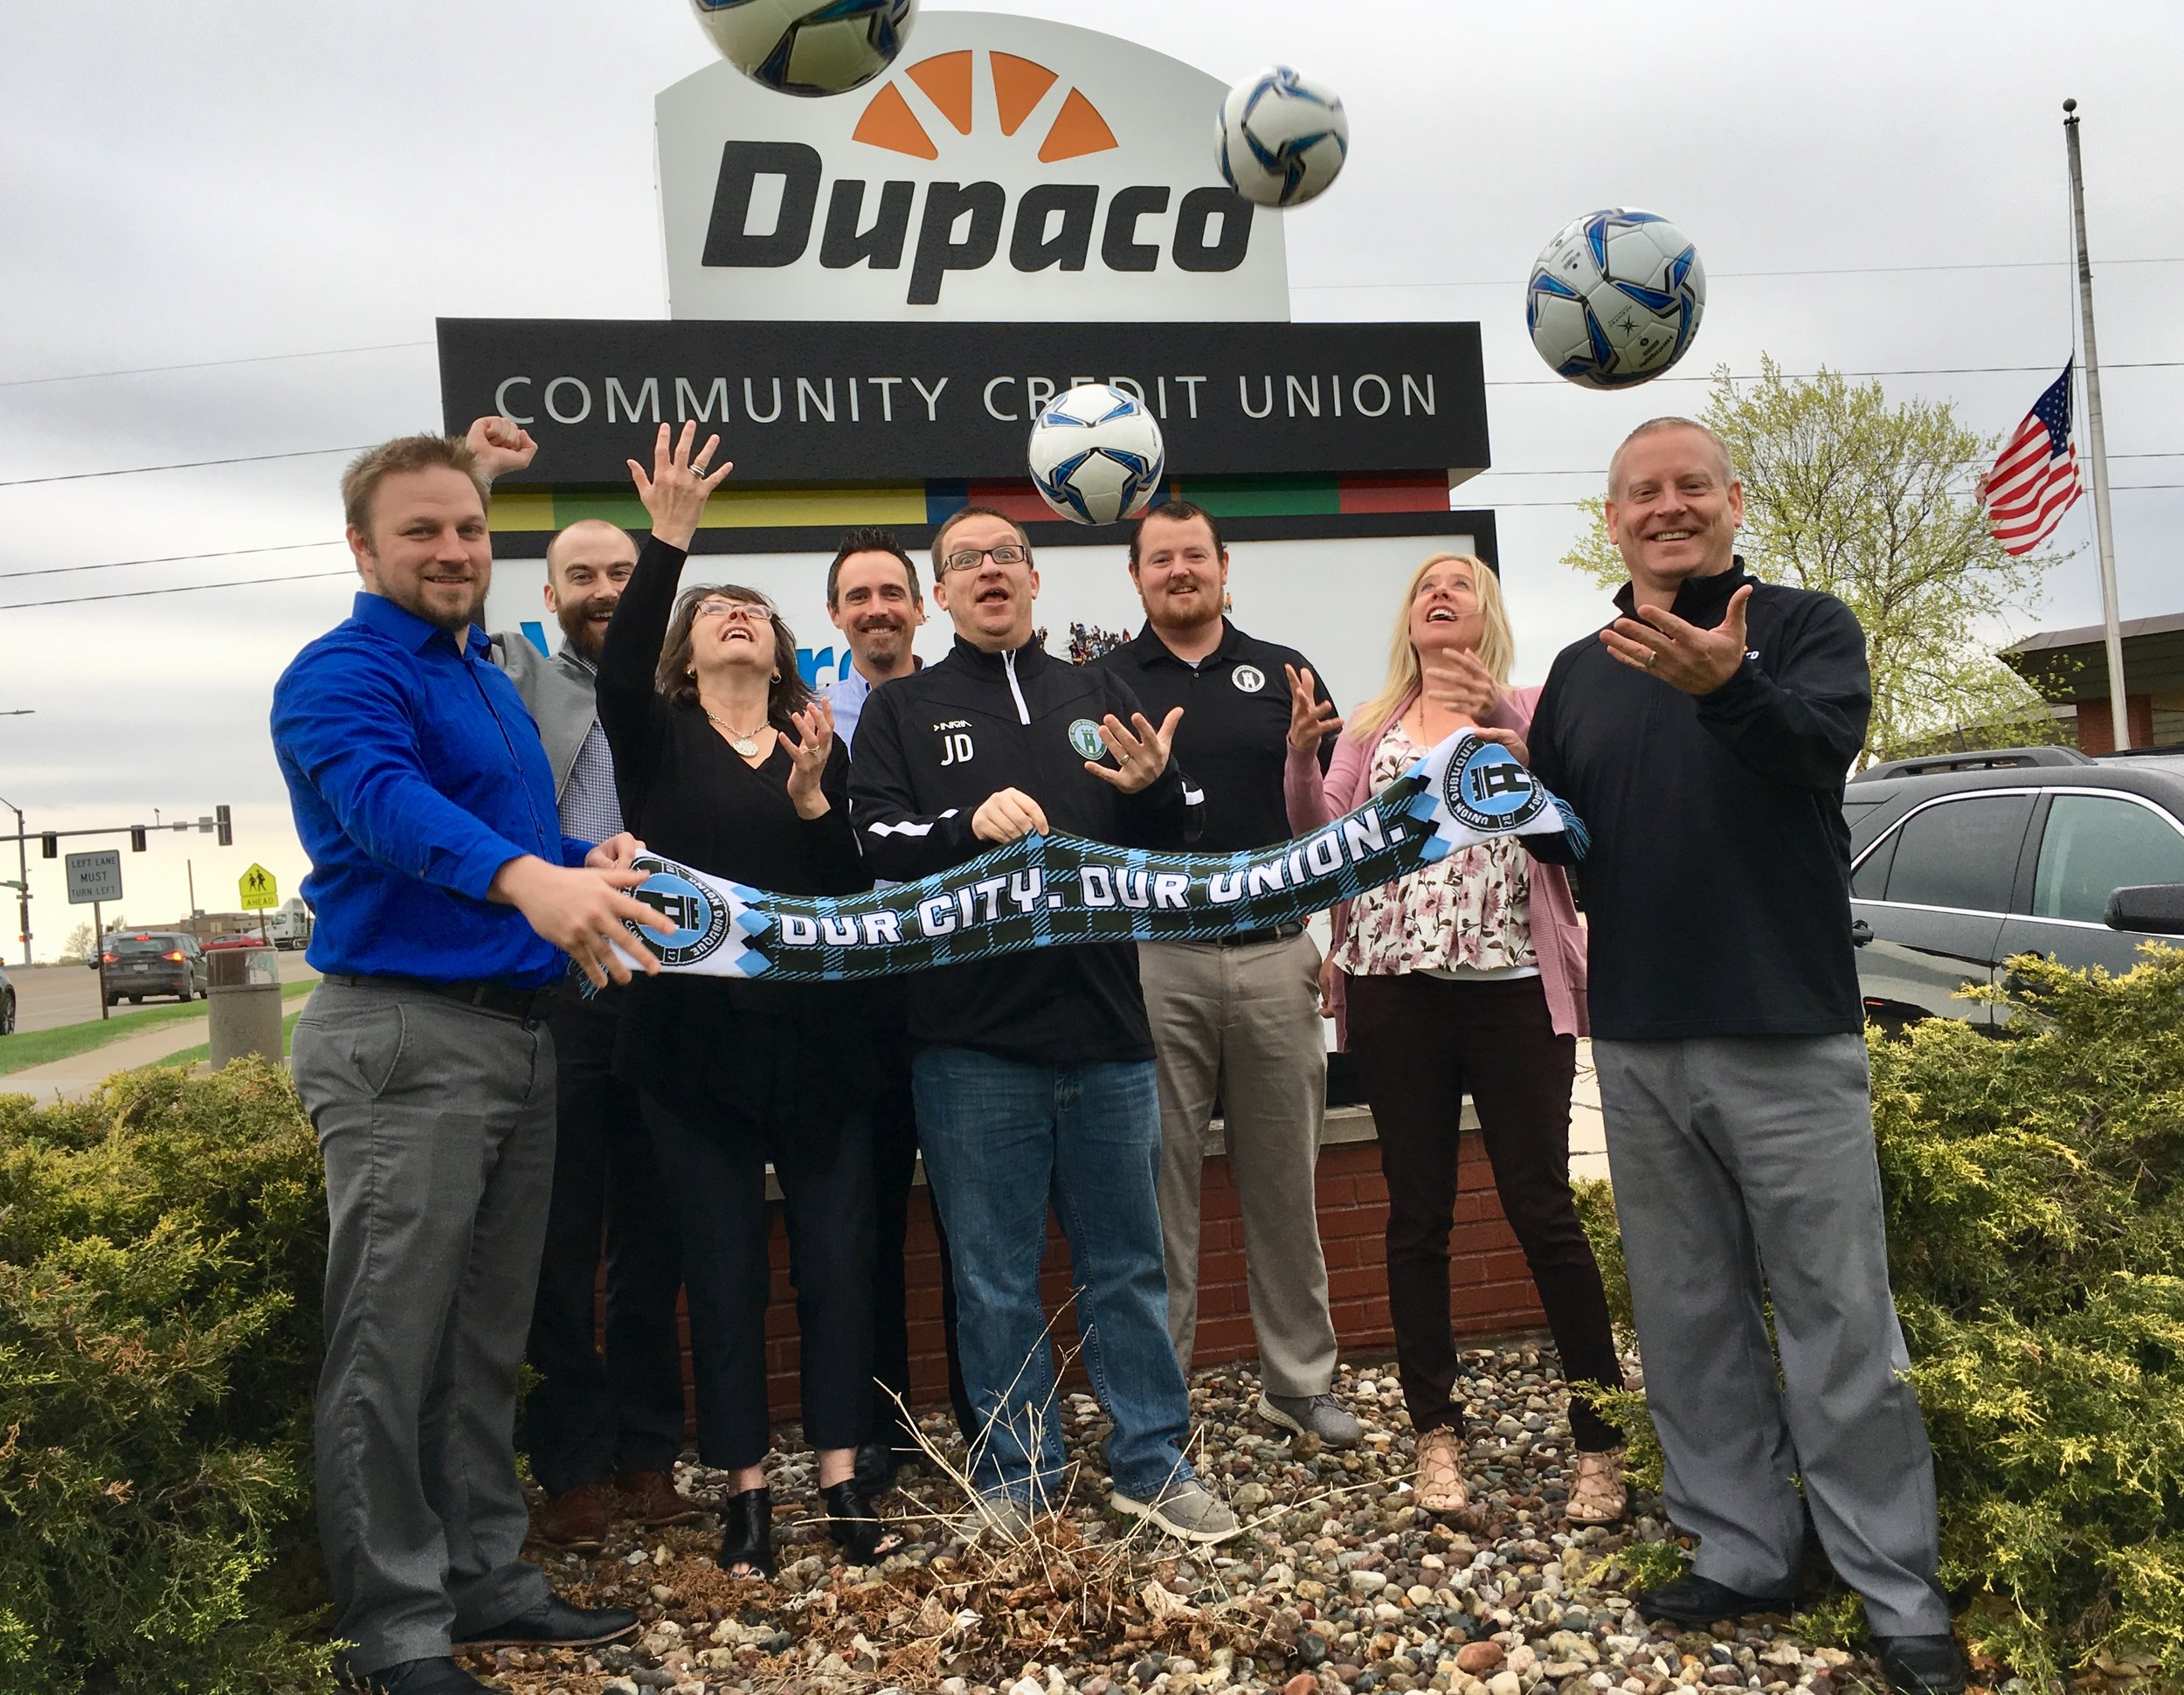 A mixed contingent of Union Dubuque and Dupaco employees celebrate the partnership.